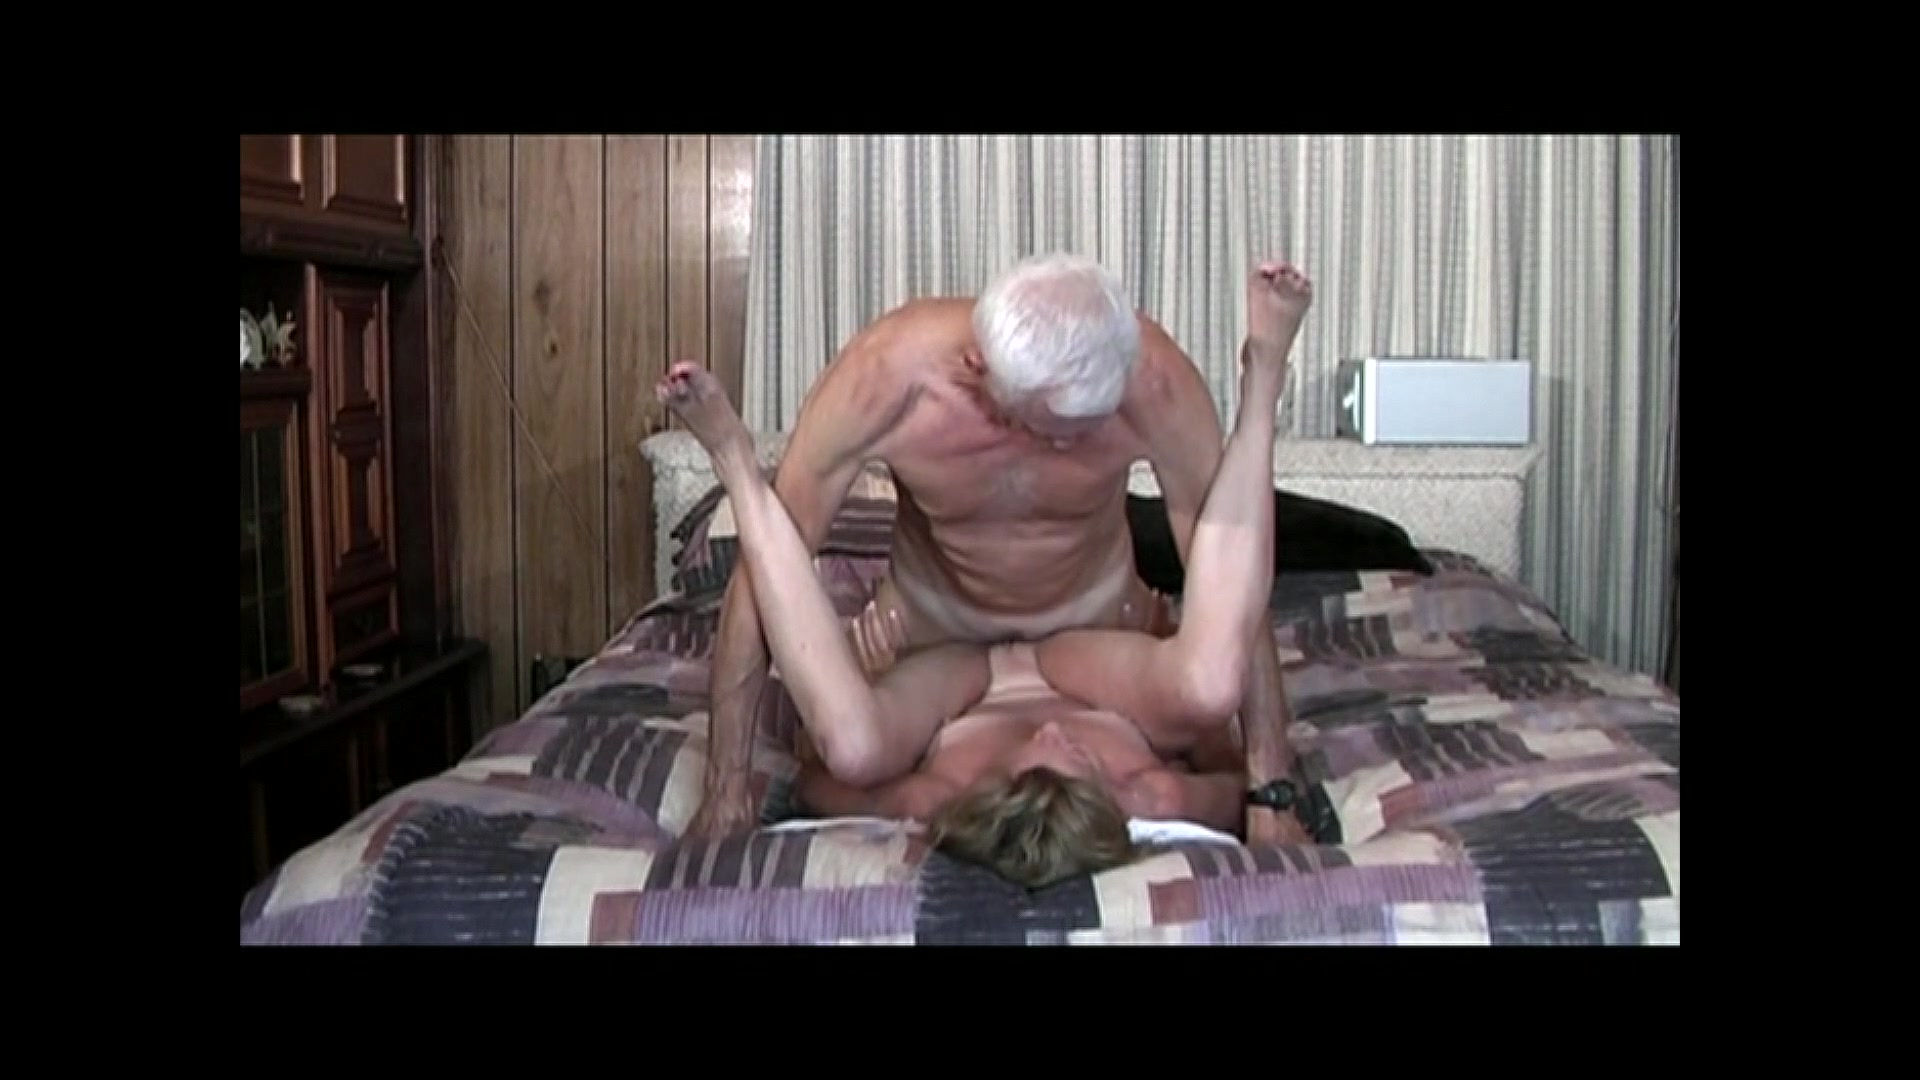 Granny takes it up the ass